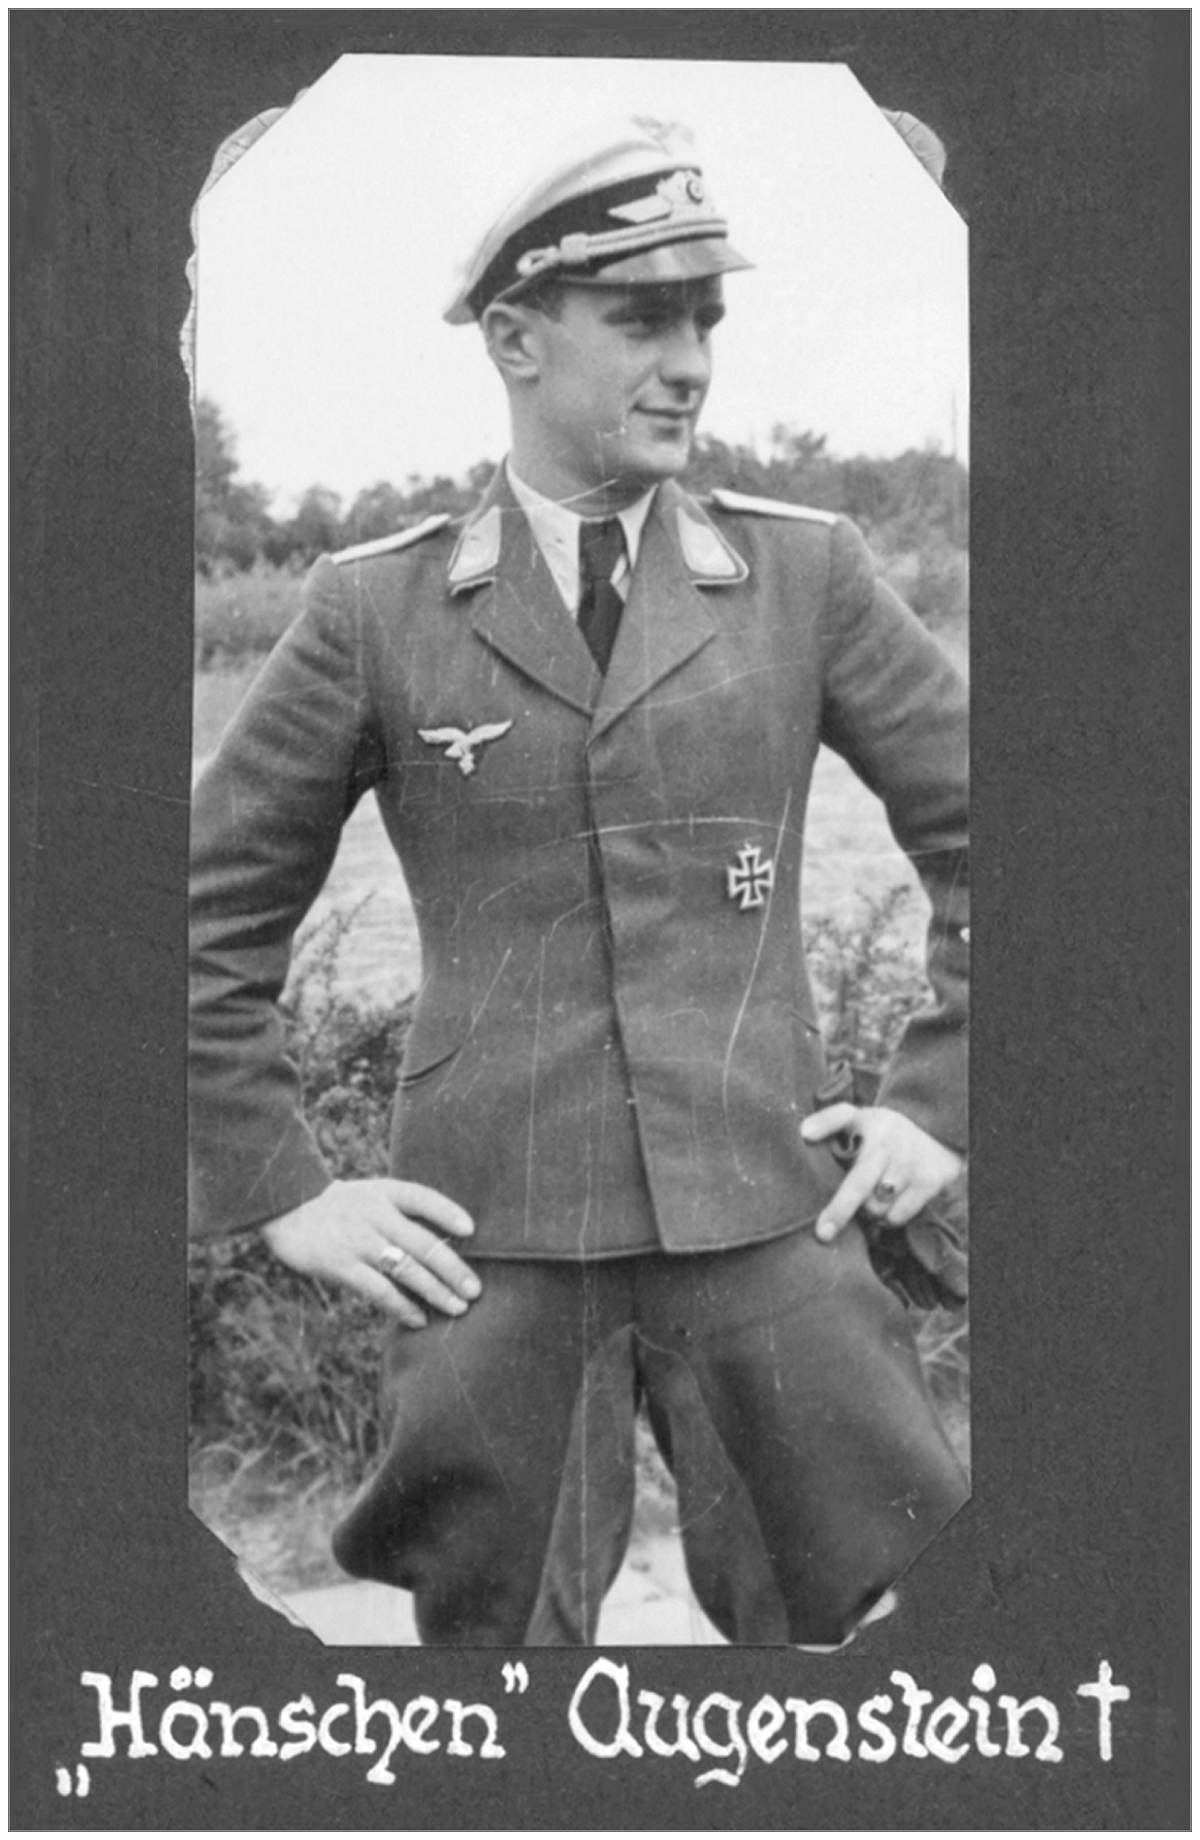 Lt. Hänschen Augenstein - from Rolf Ebhardt (former Night fighter pilot)